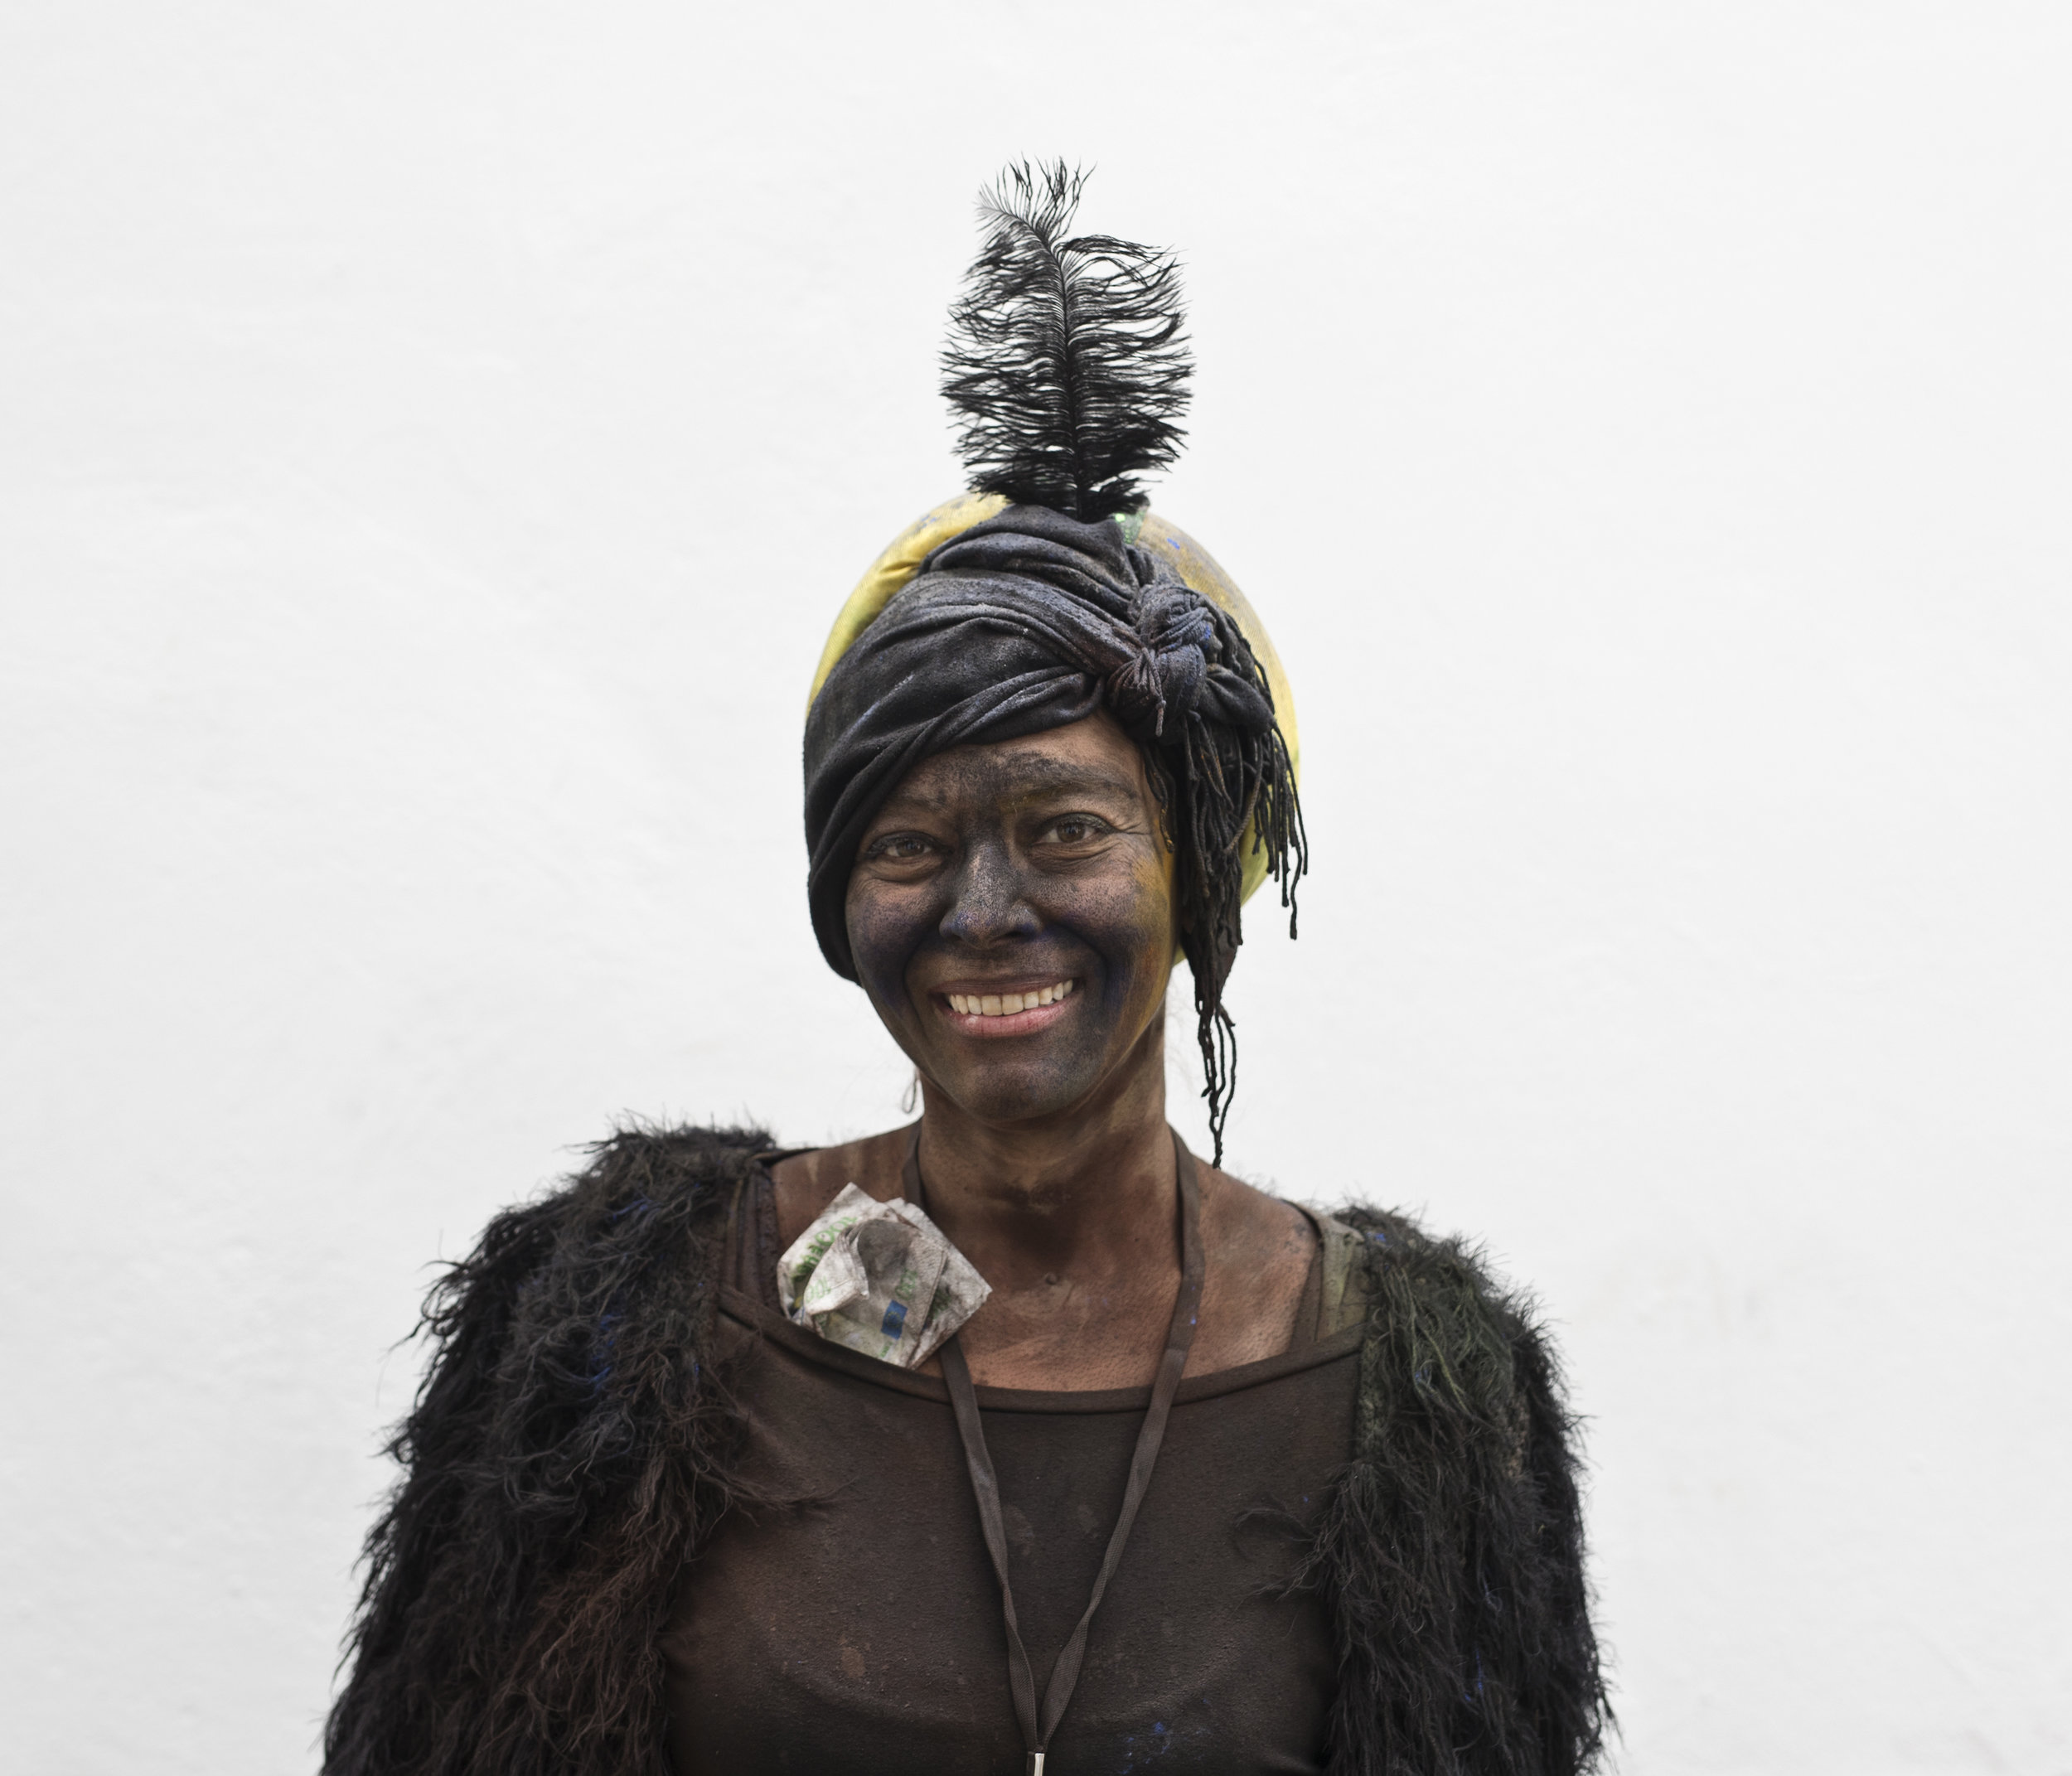 In this Monday, Feb. 19, 2018 photo Viki, first name given, poses for a portrait as she takes part in the flour war, a unique colorful flour fight marking the end of the carnival season in the port town of Galaxidi, some 200 kilometers (120 miles) west of Athens. (AP Photo/Petros Giannakouris)